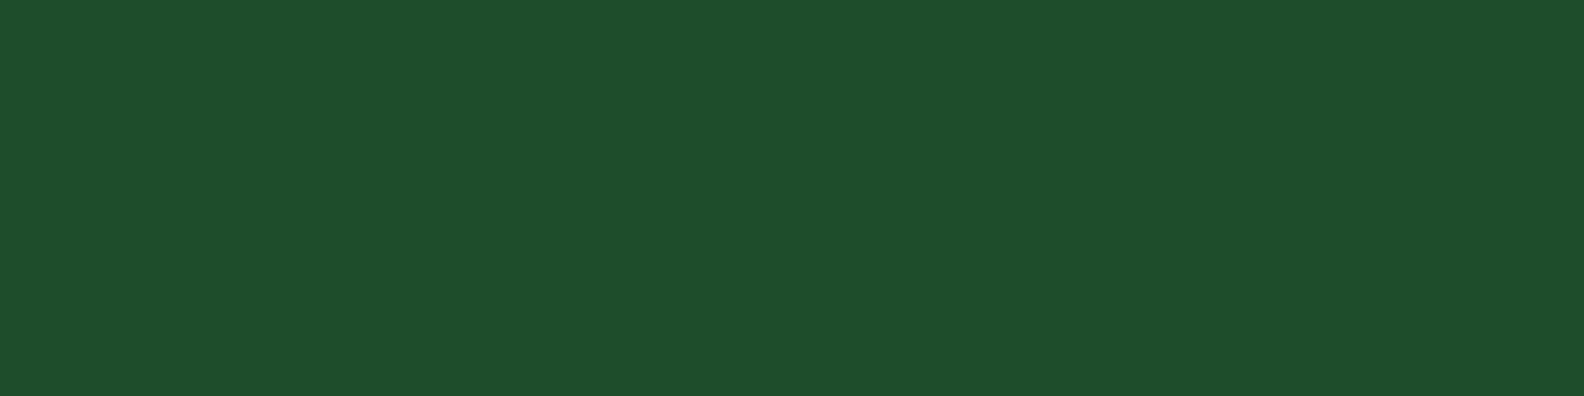 1584x396 Cal Poly Green Solid Color Background